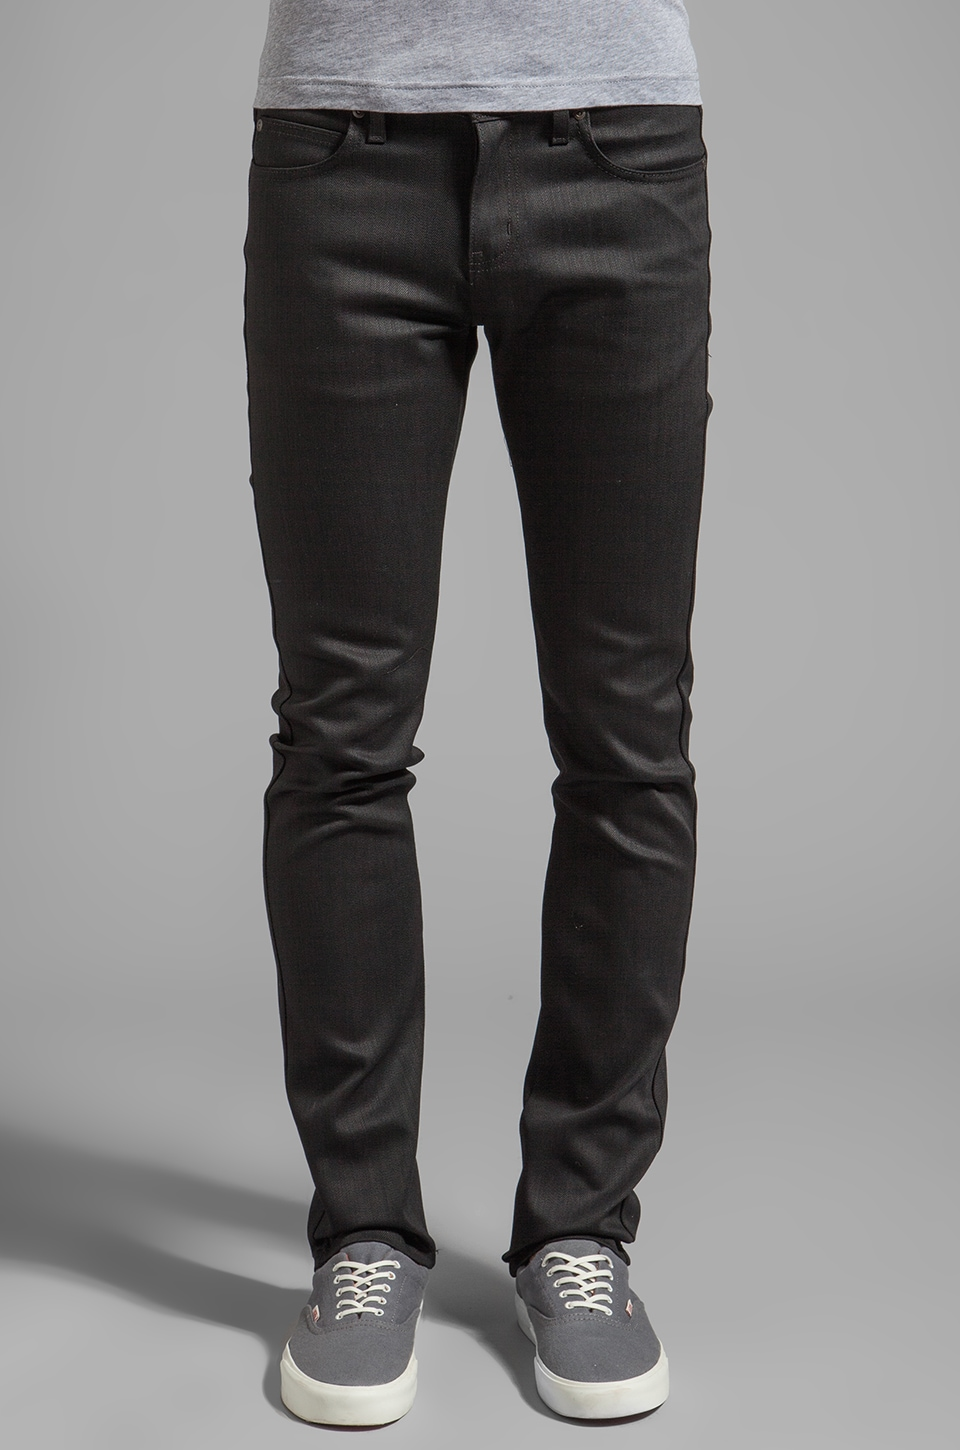 Naked & Famous Denim Super Skinny Guy Black Power Stretch 12 oz. in Black